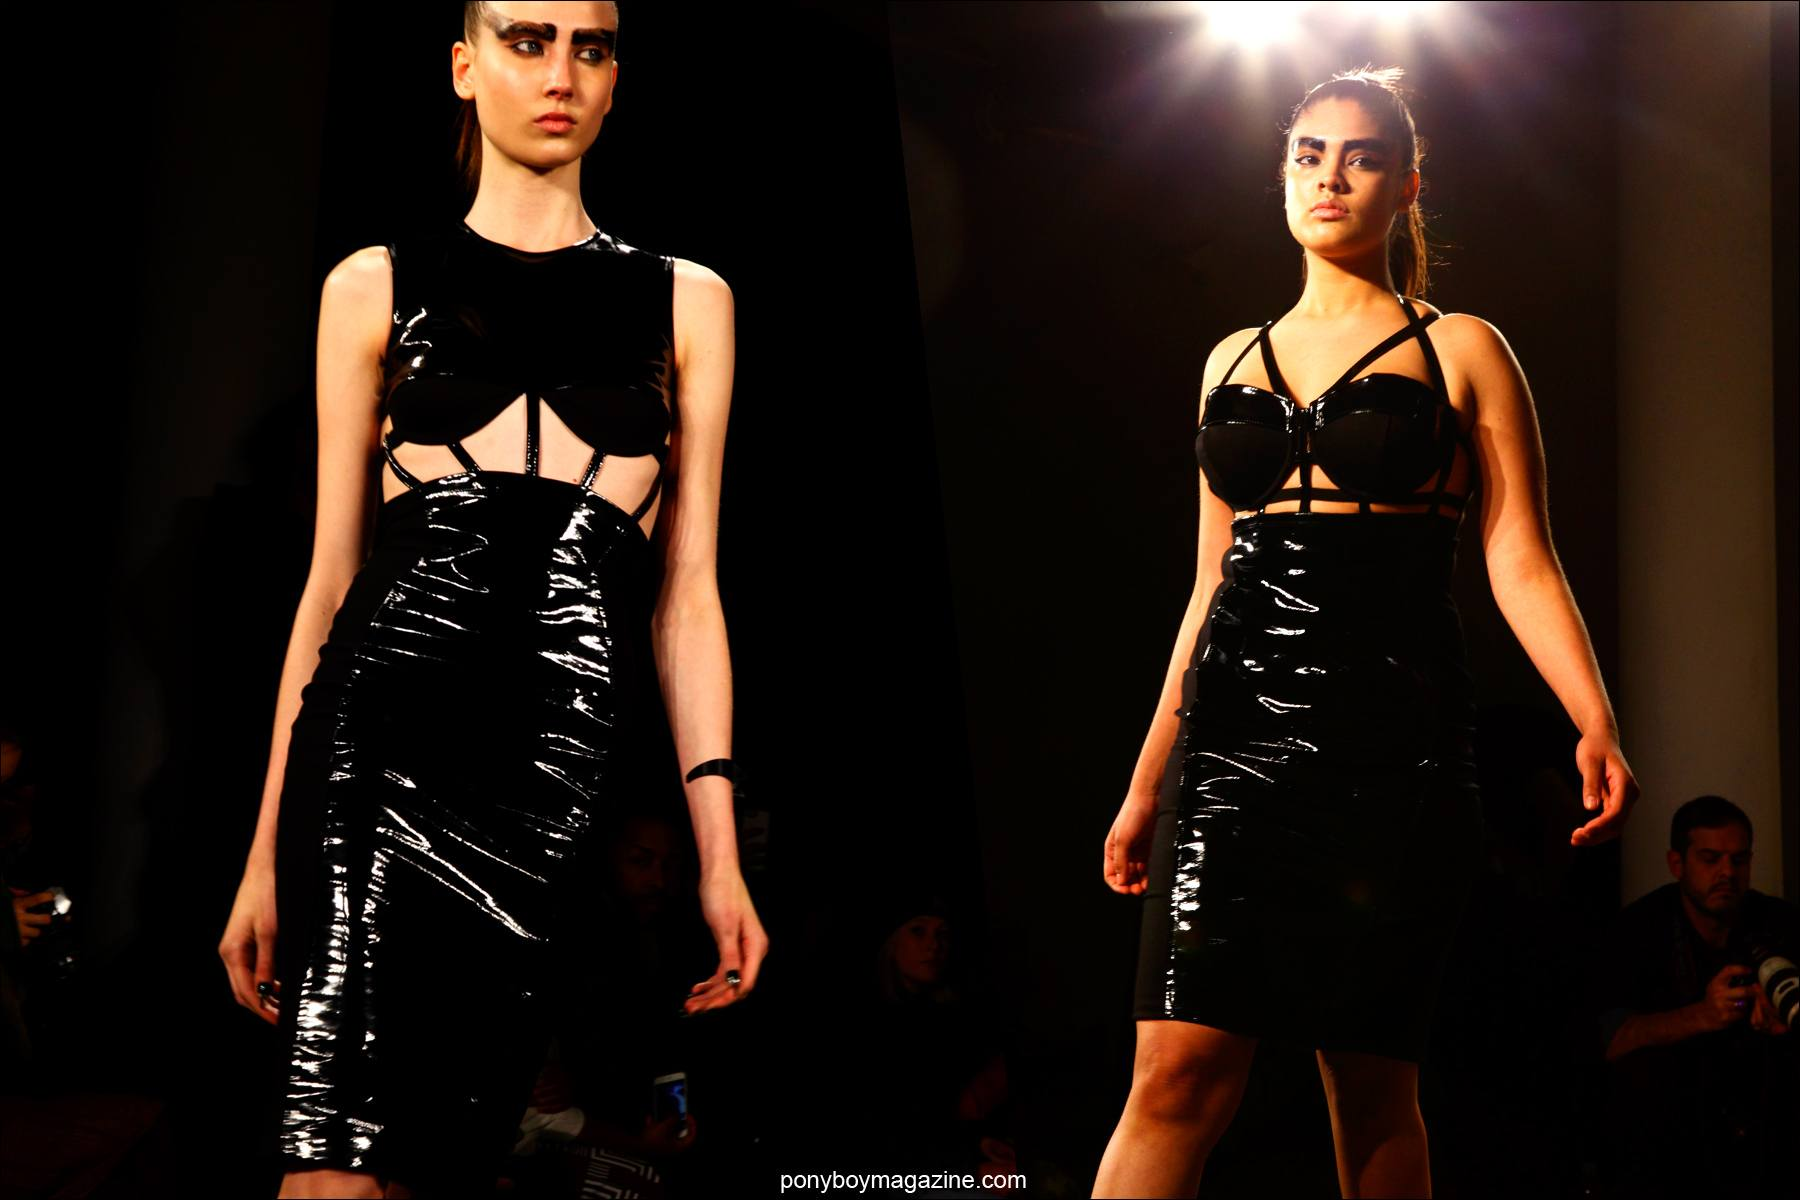 Fetish inspired dresses at Chromat F/W15 collection at Milk Studios in New York. Photos by Alexander Thompson for Ponyboy magazine.